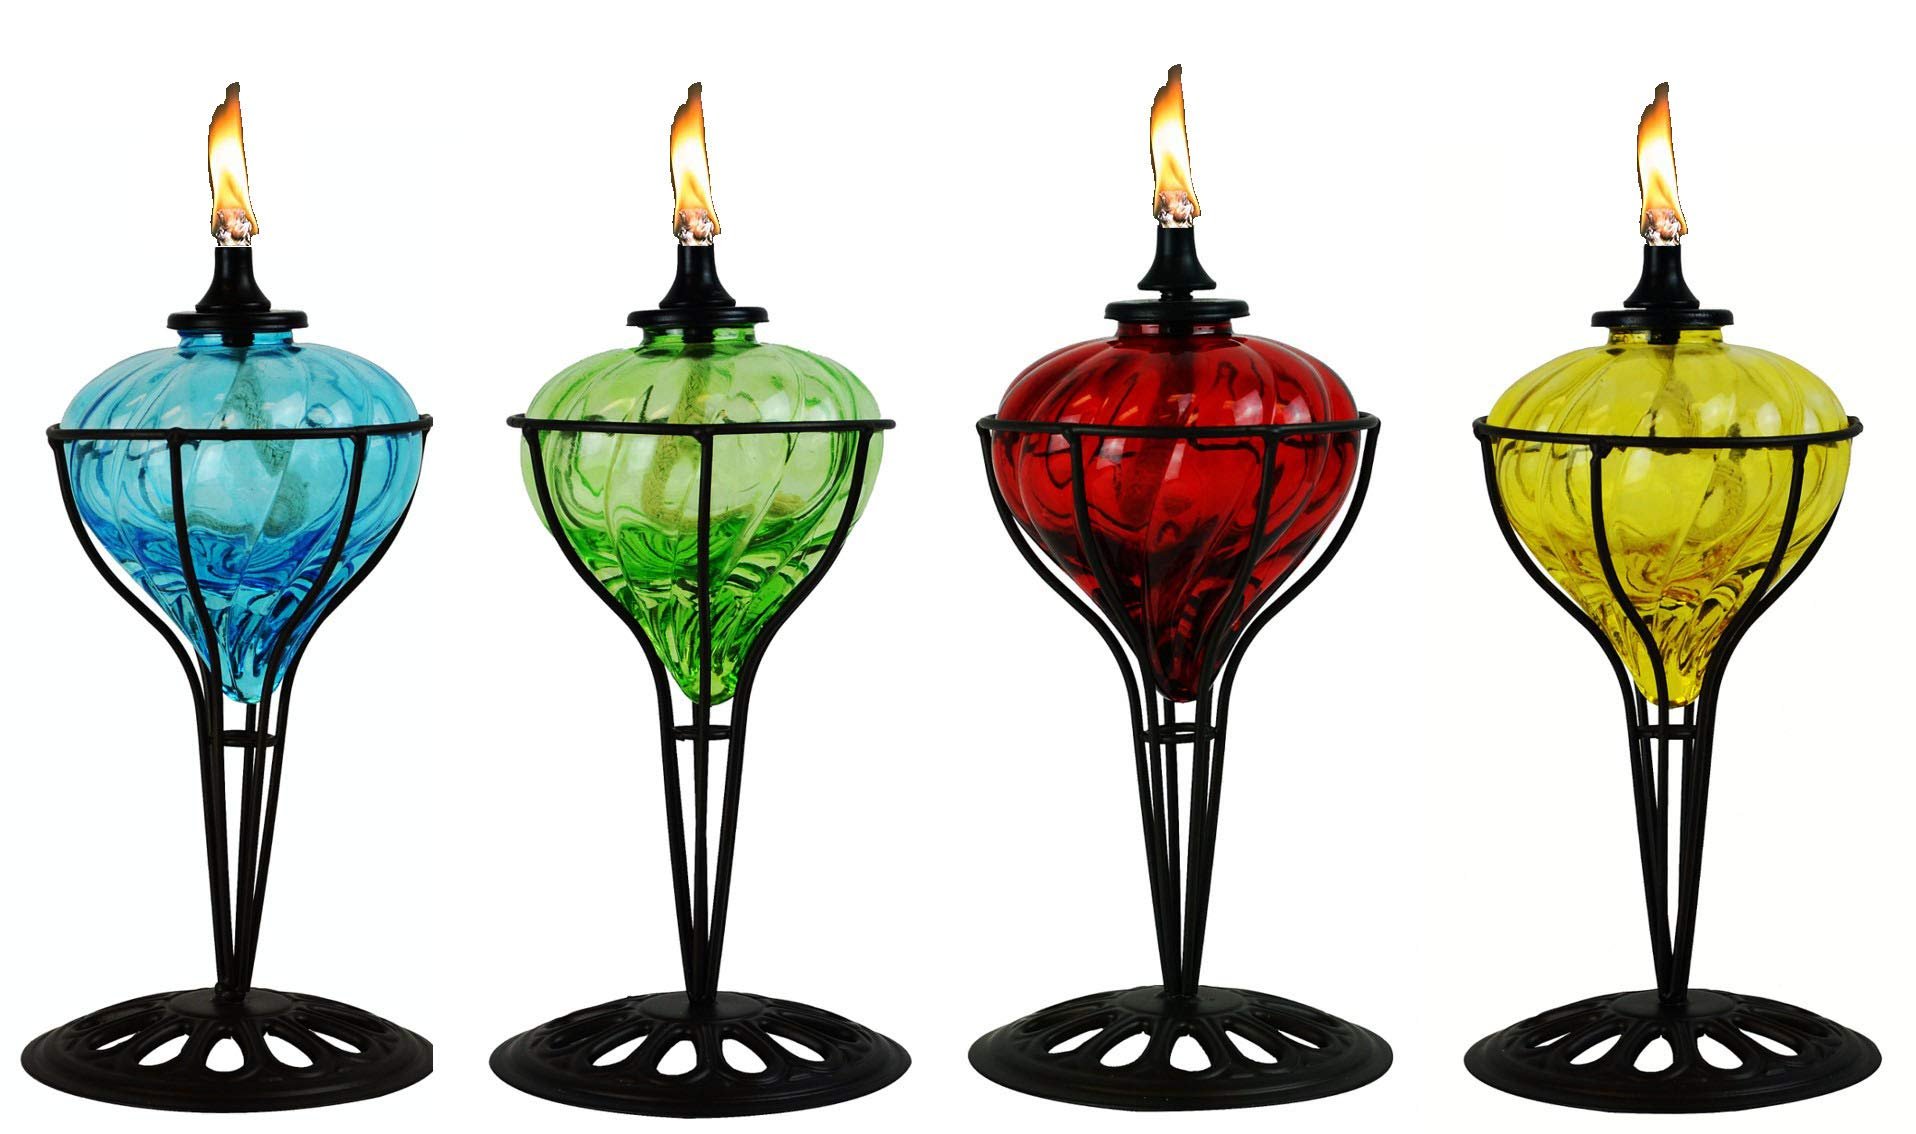 4 Pack 10 in Assorted Color Table Top Torch - Burning Citronella / Lamp Oil Product SKU: GD10061 by PierSurplus